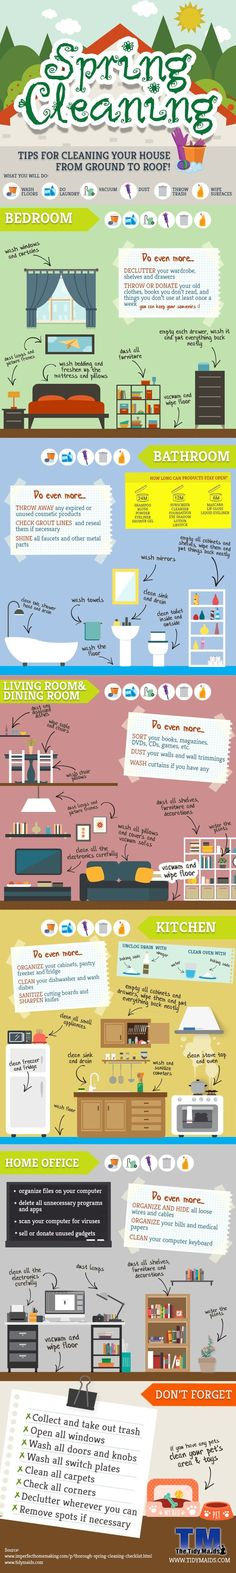 Spring Cleaning 101 — Don't forget ANYTHING this year! Top to bottom for ev… Spring Cleaning 101 — Don't forget ANYTHING this year! Top to bottom for every room in the house. Deep Cleaning Tips, Cleaning Checklist, House Cleaning Tips, Natural Cleaning Products, Cleaning Solutions, Spring Cleaning, Cleaning Hacks, Cleaning Schedules, Organizing Tips